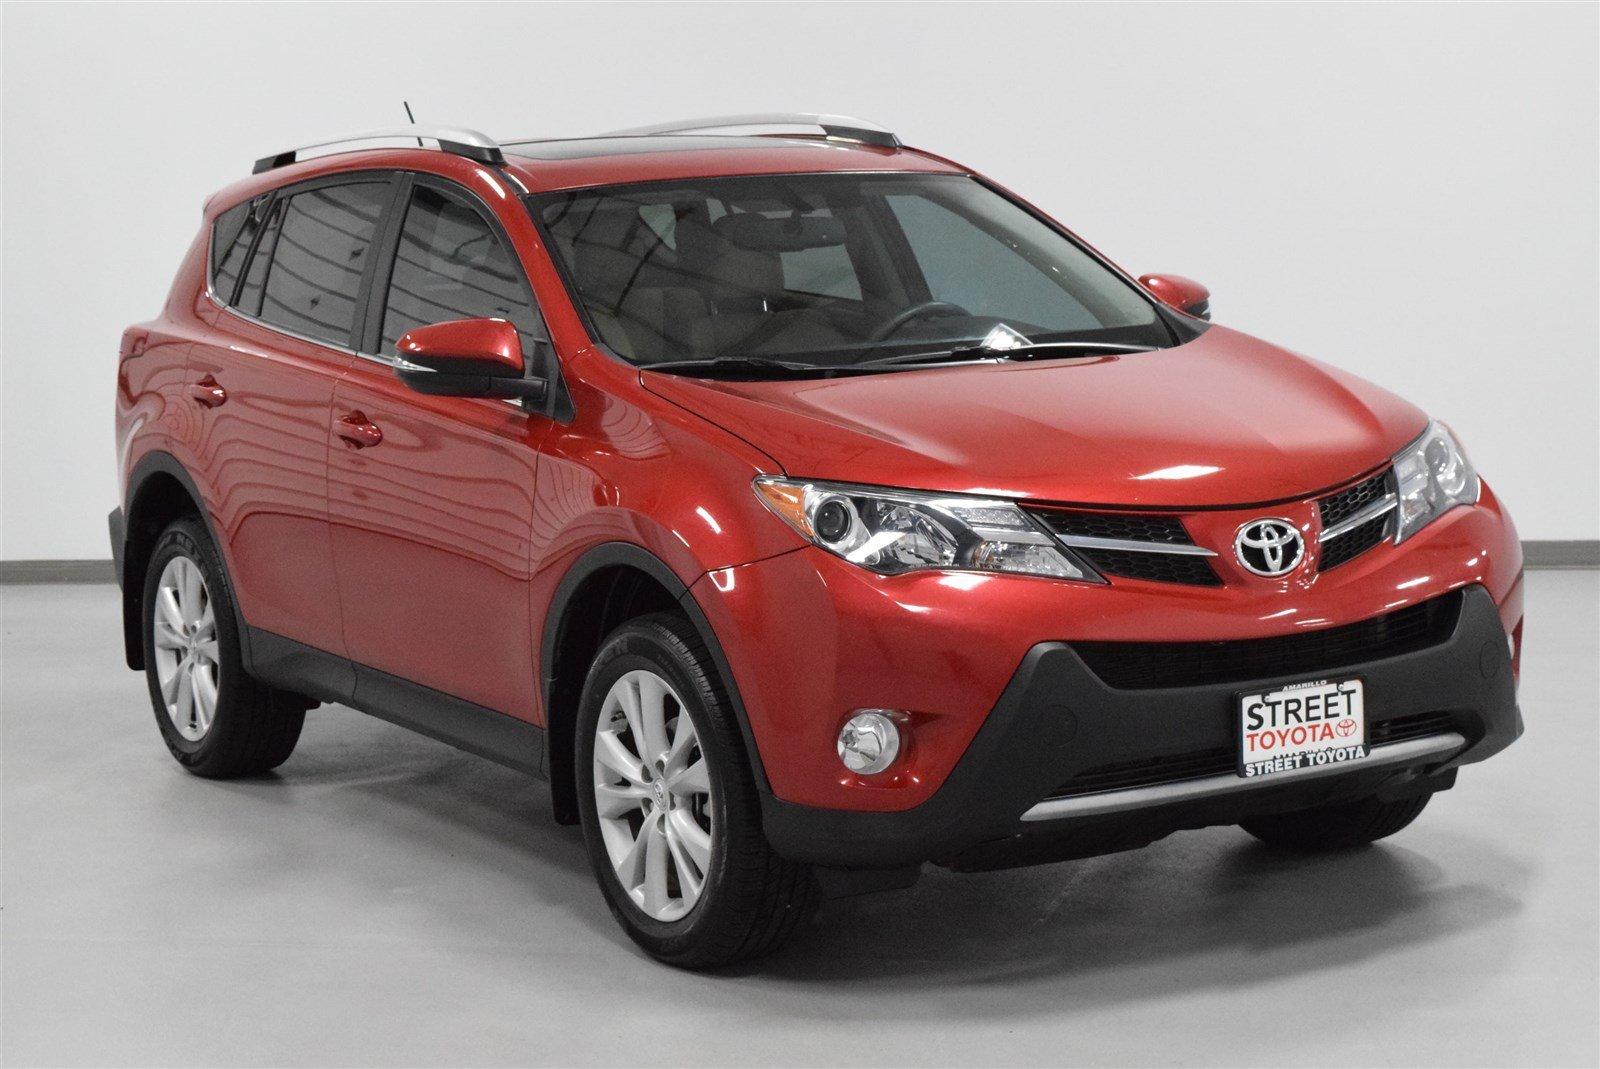 Toyota toyota rav 2013 : Certified Pre-Owned 2013 Toyota RAV4 For Sale in Amarillo, TX ...